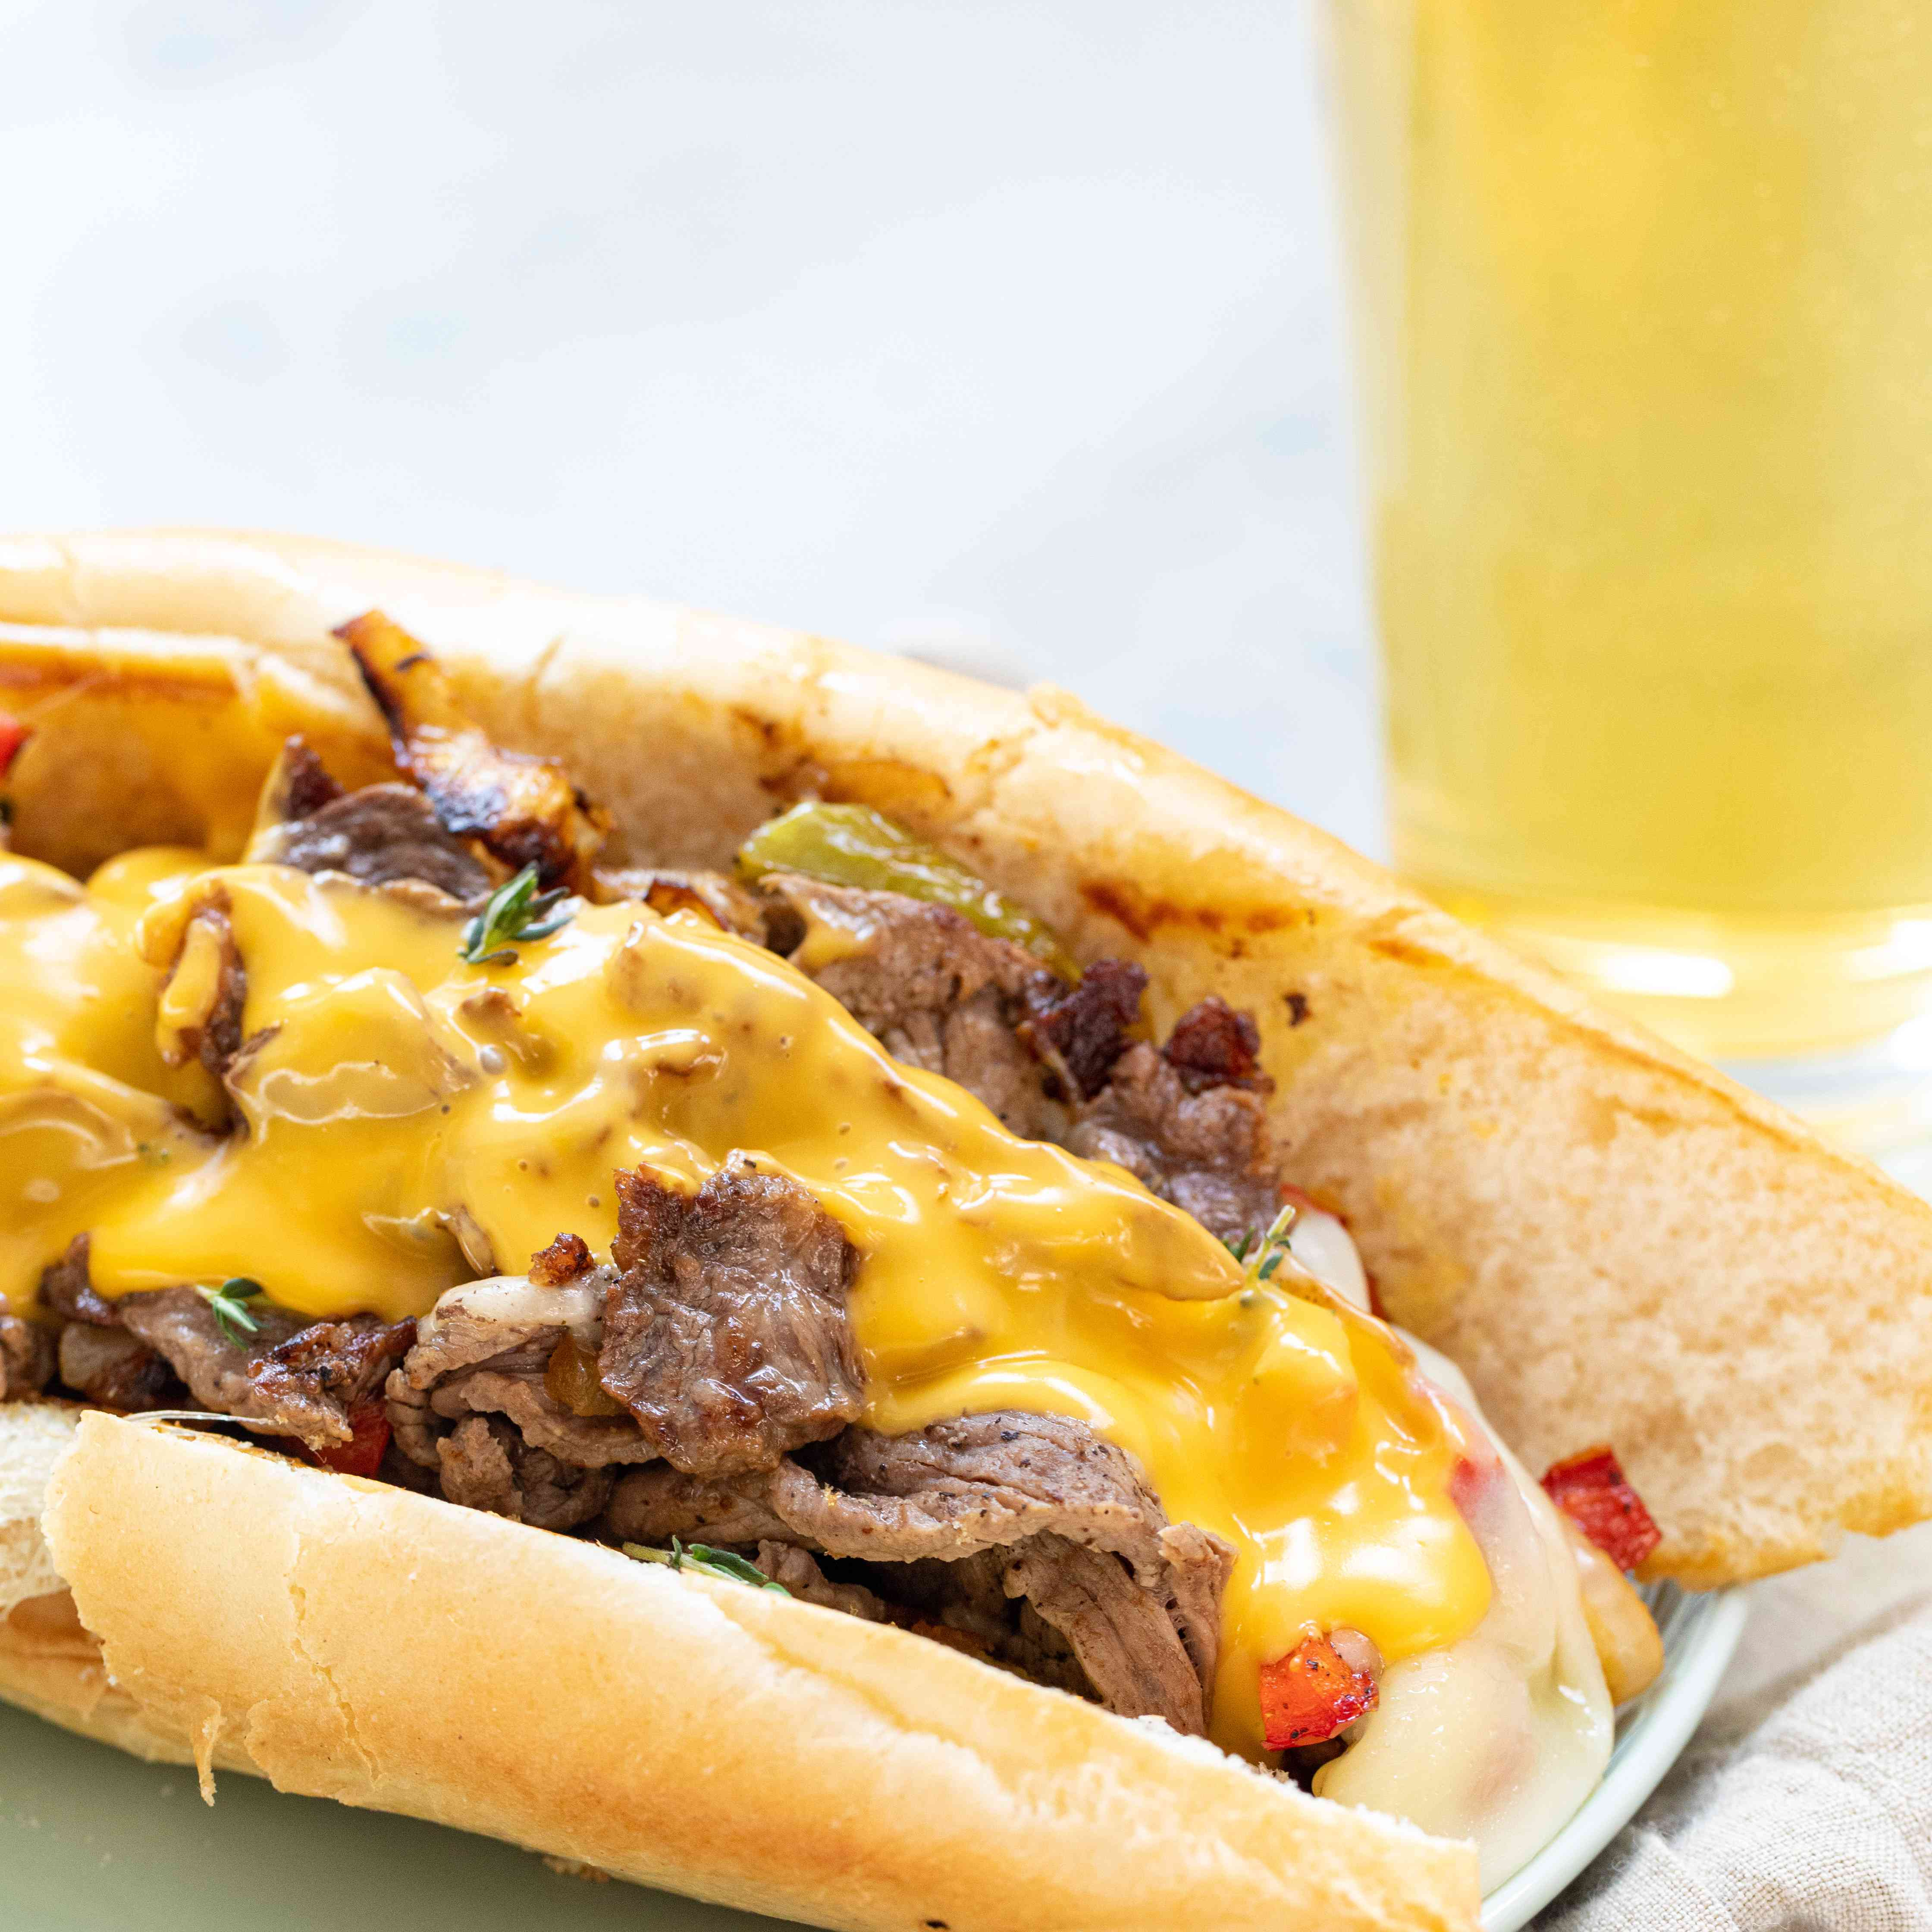 Philly Cheesesteak Sandwich with Onions and Peppers topped with cheese and on a plate.